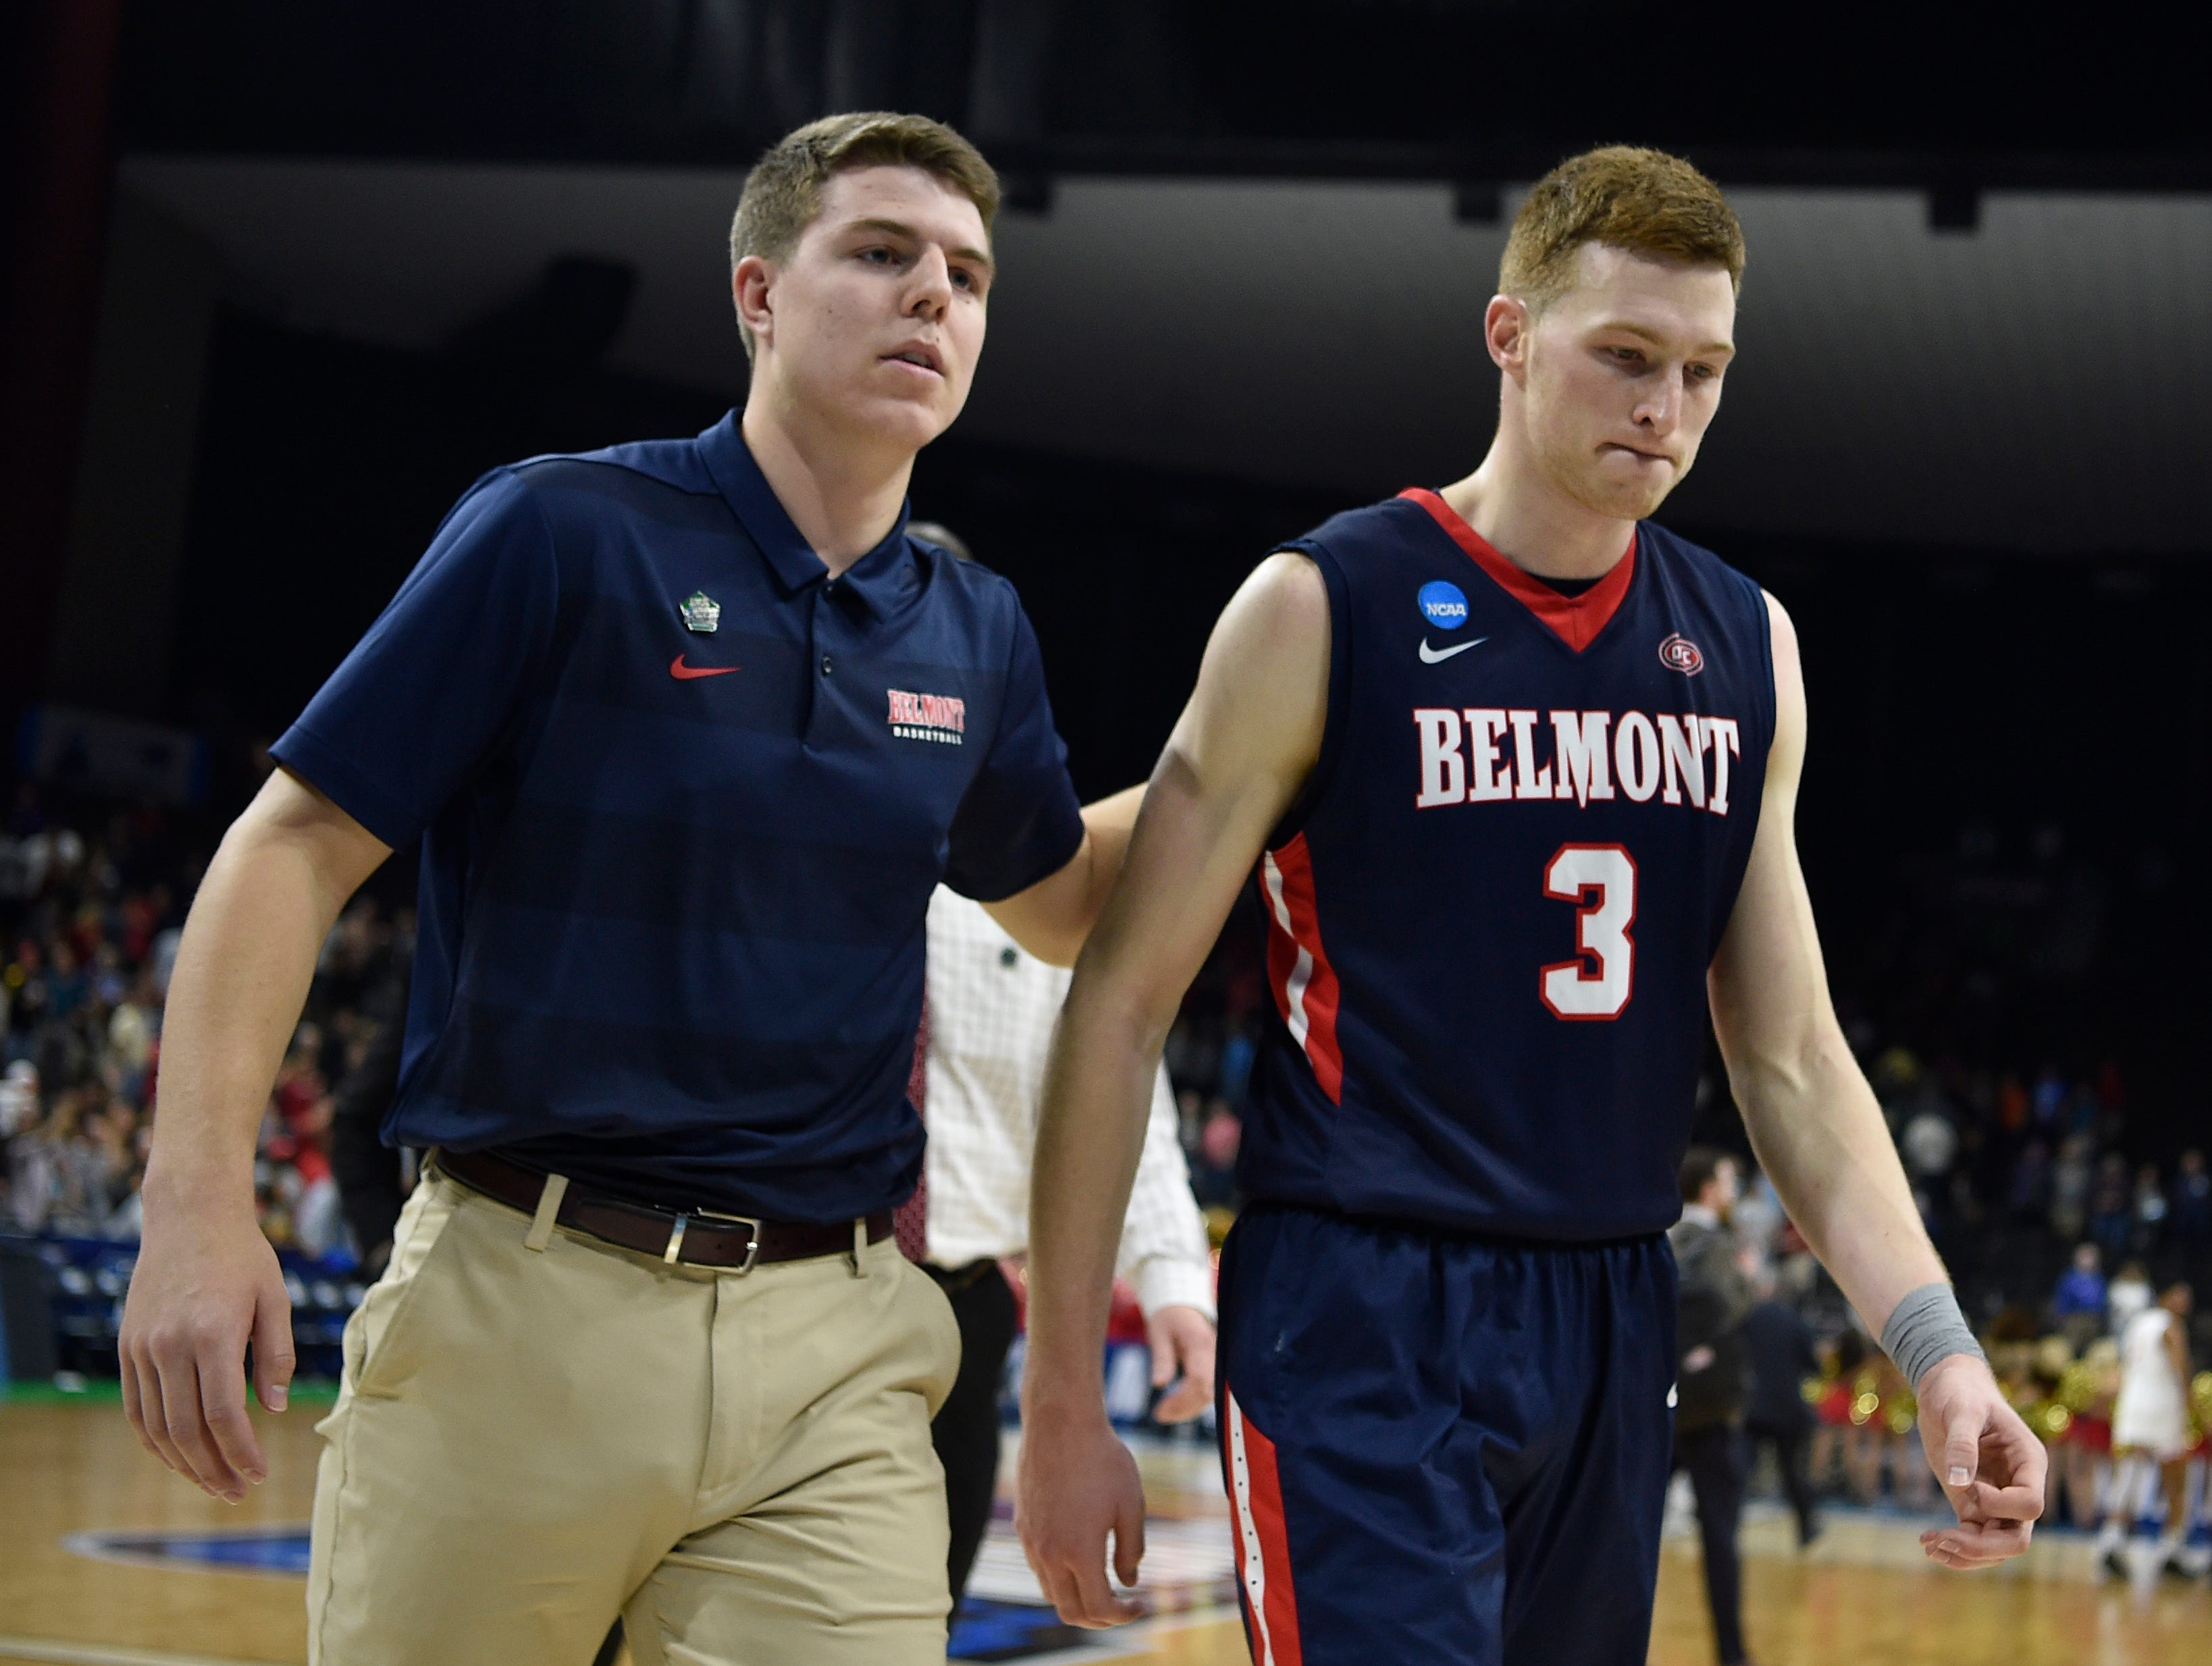 Belmont guard/forward Dylan Windler (3) reacts after the team's loss to Maryland in their first-round NCAA college basketball tournament game at VyStar Veterans Memorial Arena in Jacksonville, Fla., Thursday, March 21, 2019.